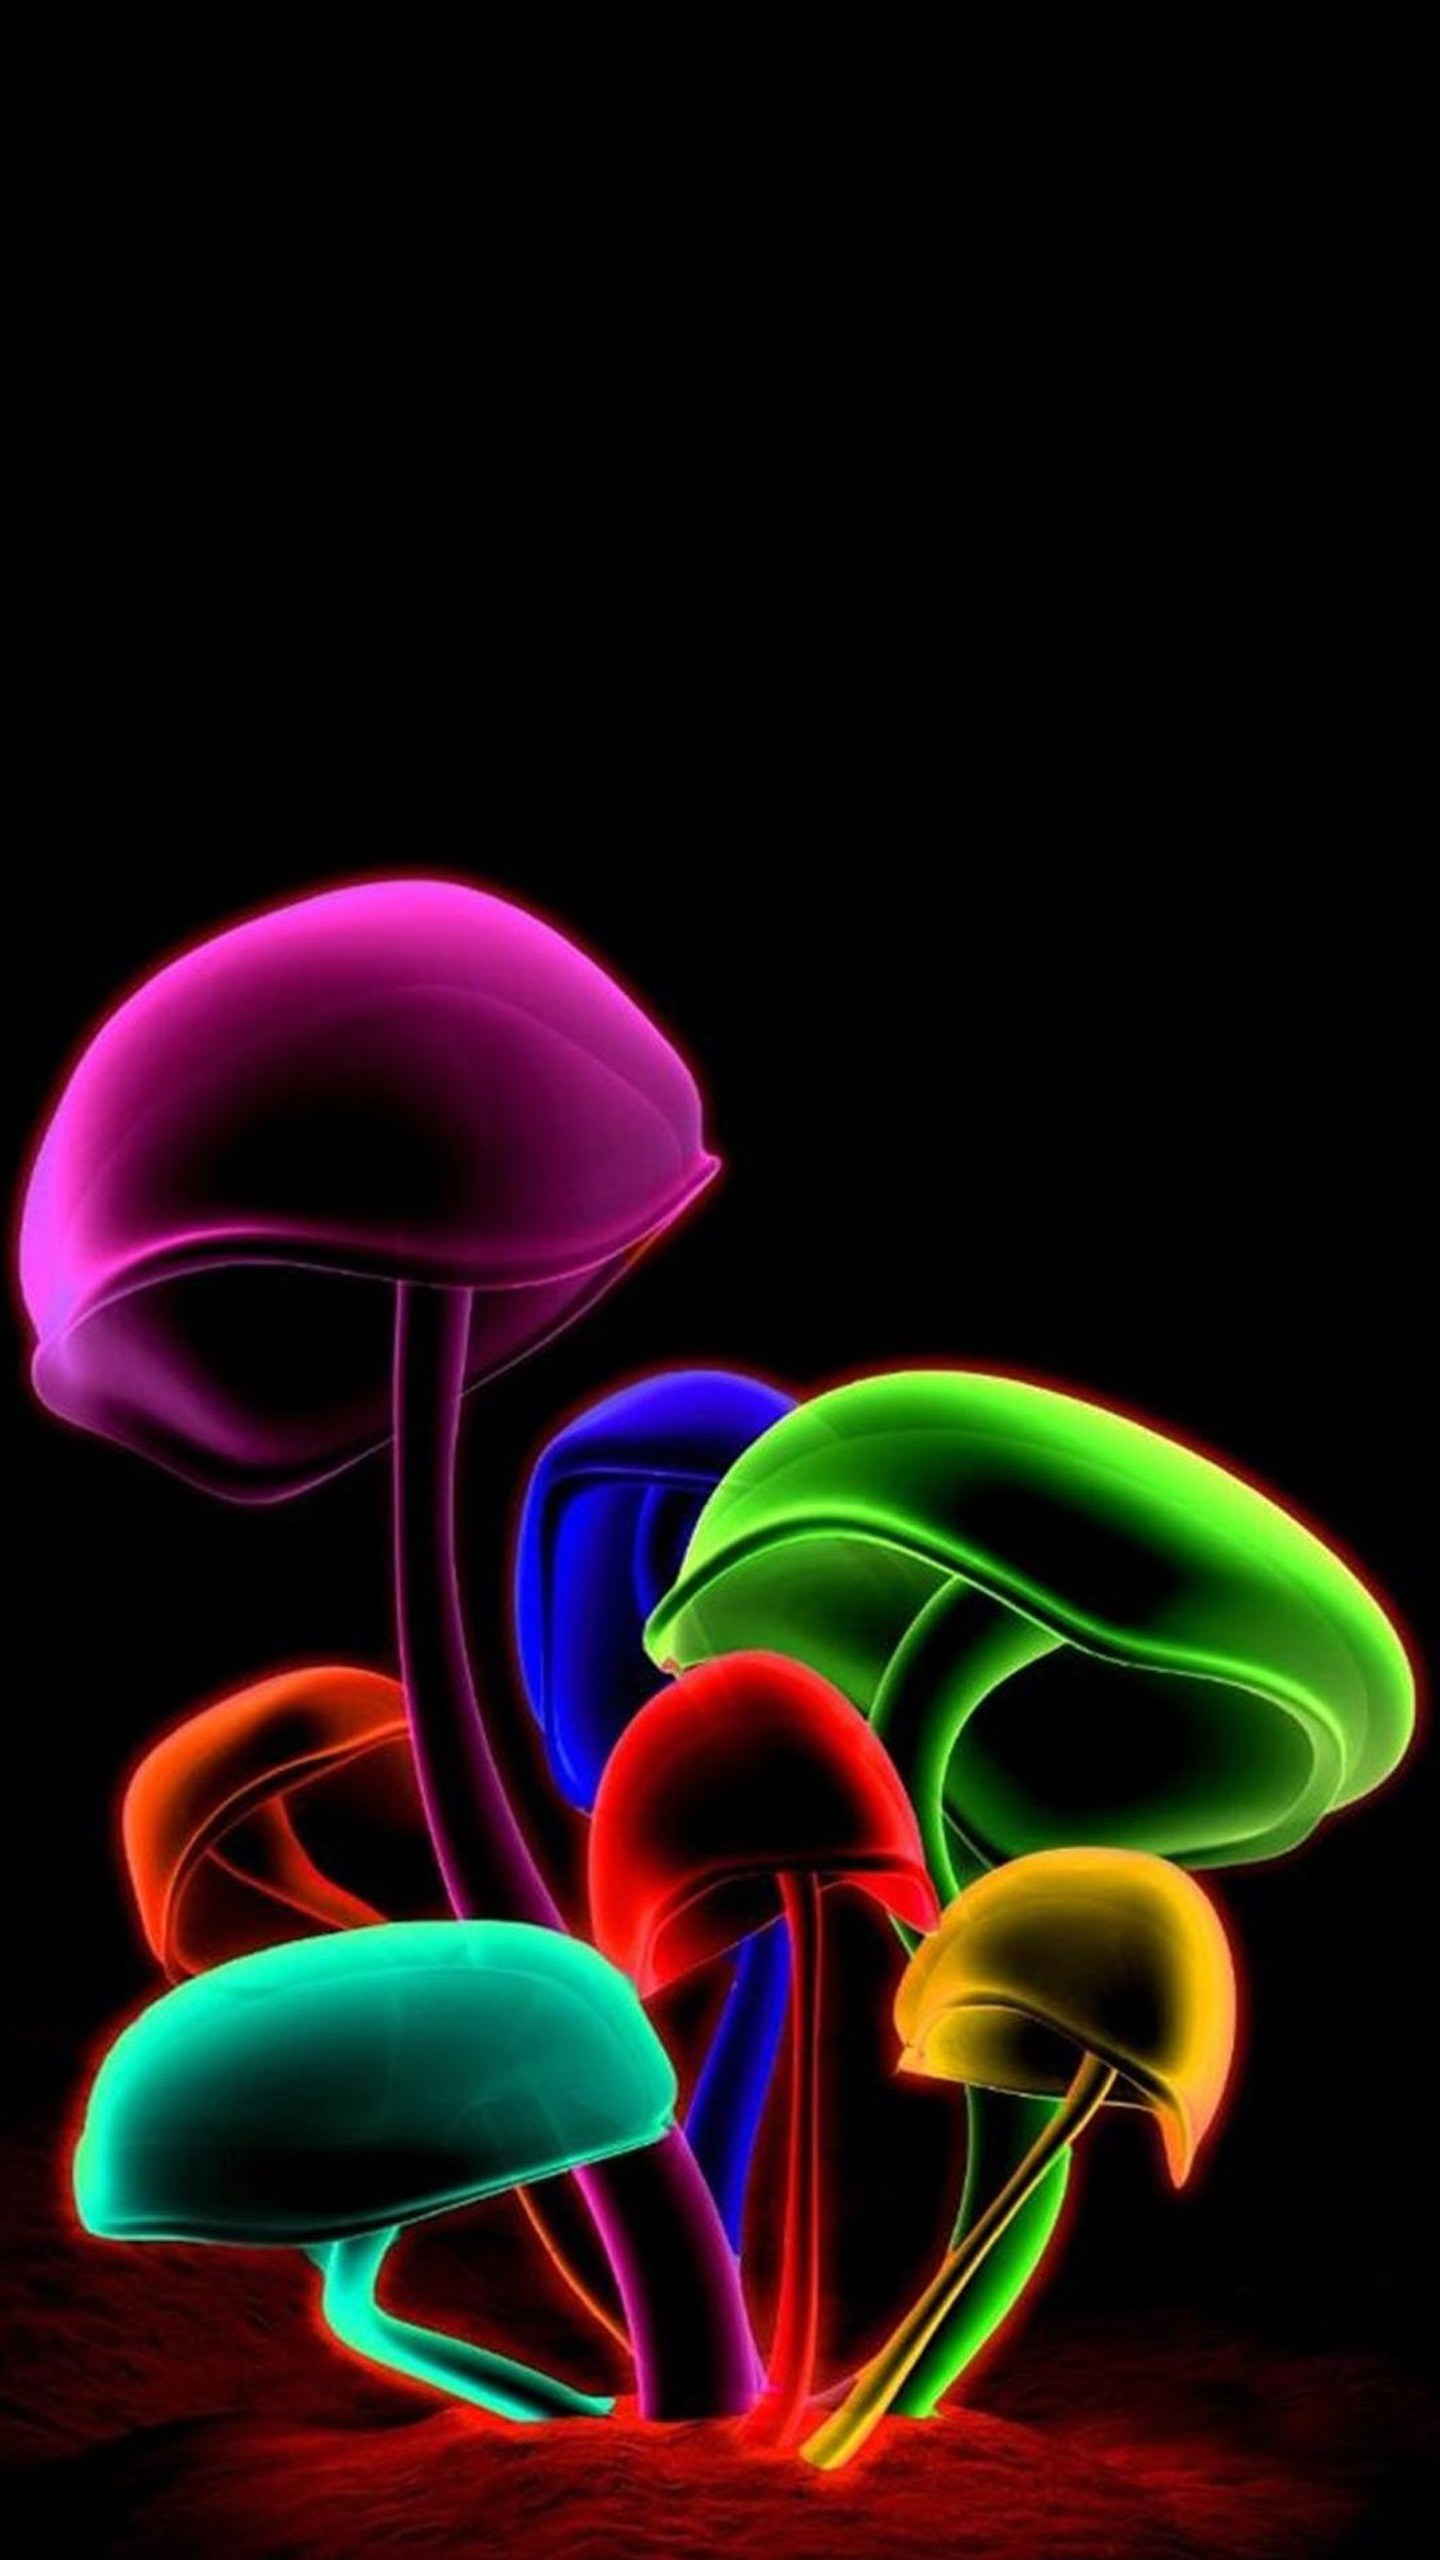 Hd wallpapers for samsung note 4